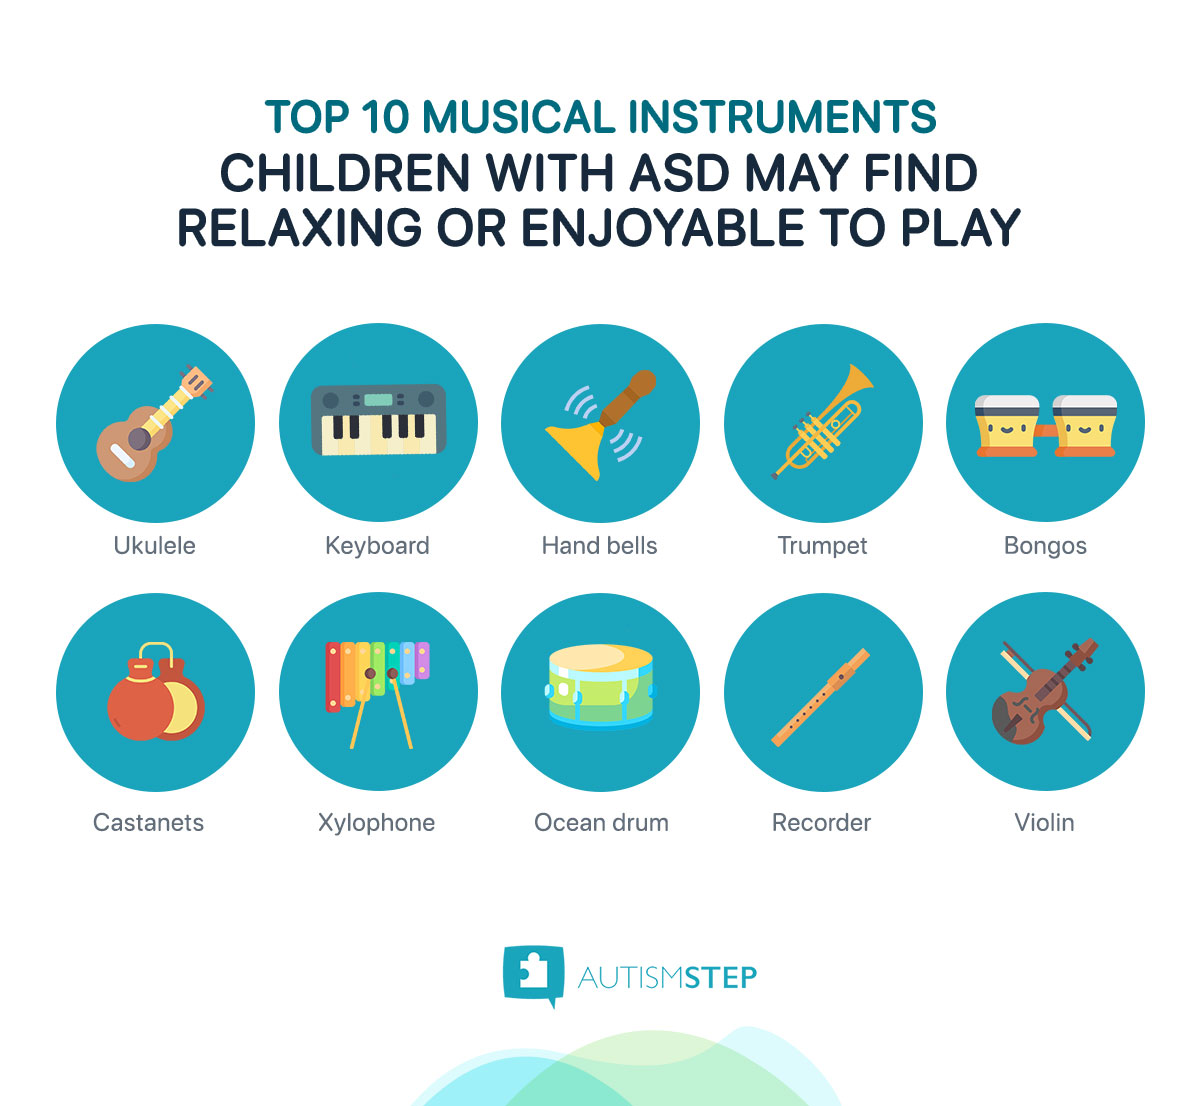 AutismSTEP-Top-10-Musical-Instruments-For-Children-With-ASD